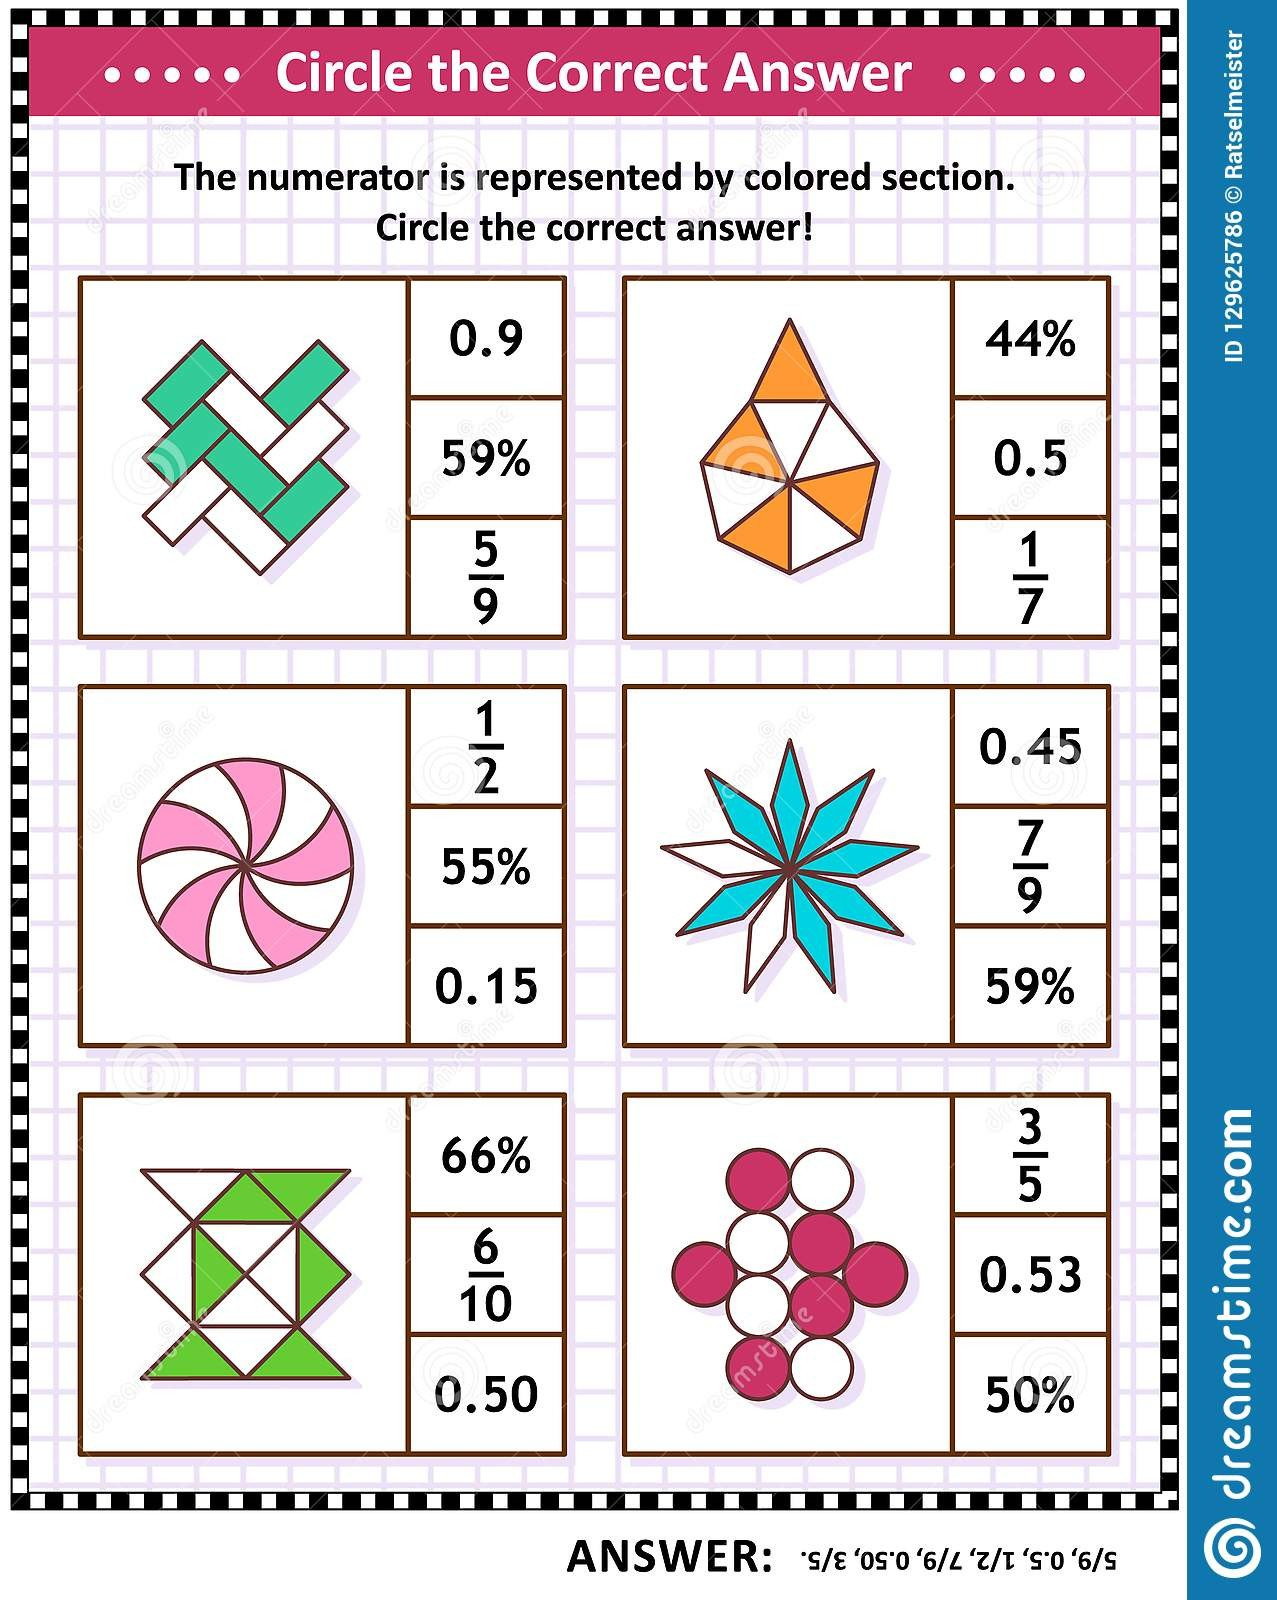 math skills iq training visual puzzle worksheet schoolchildren adults circle correct answer find number equivalent